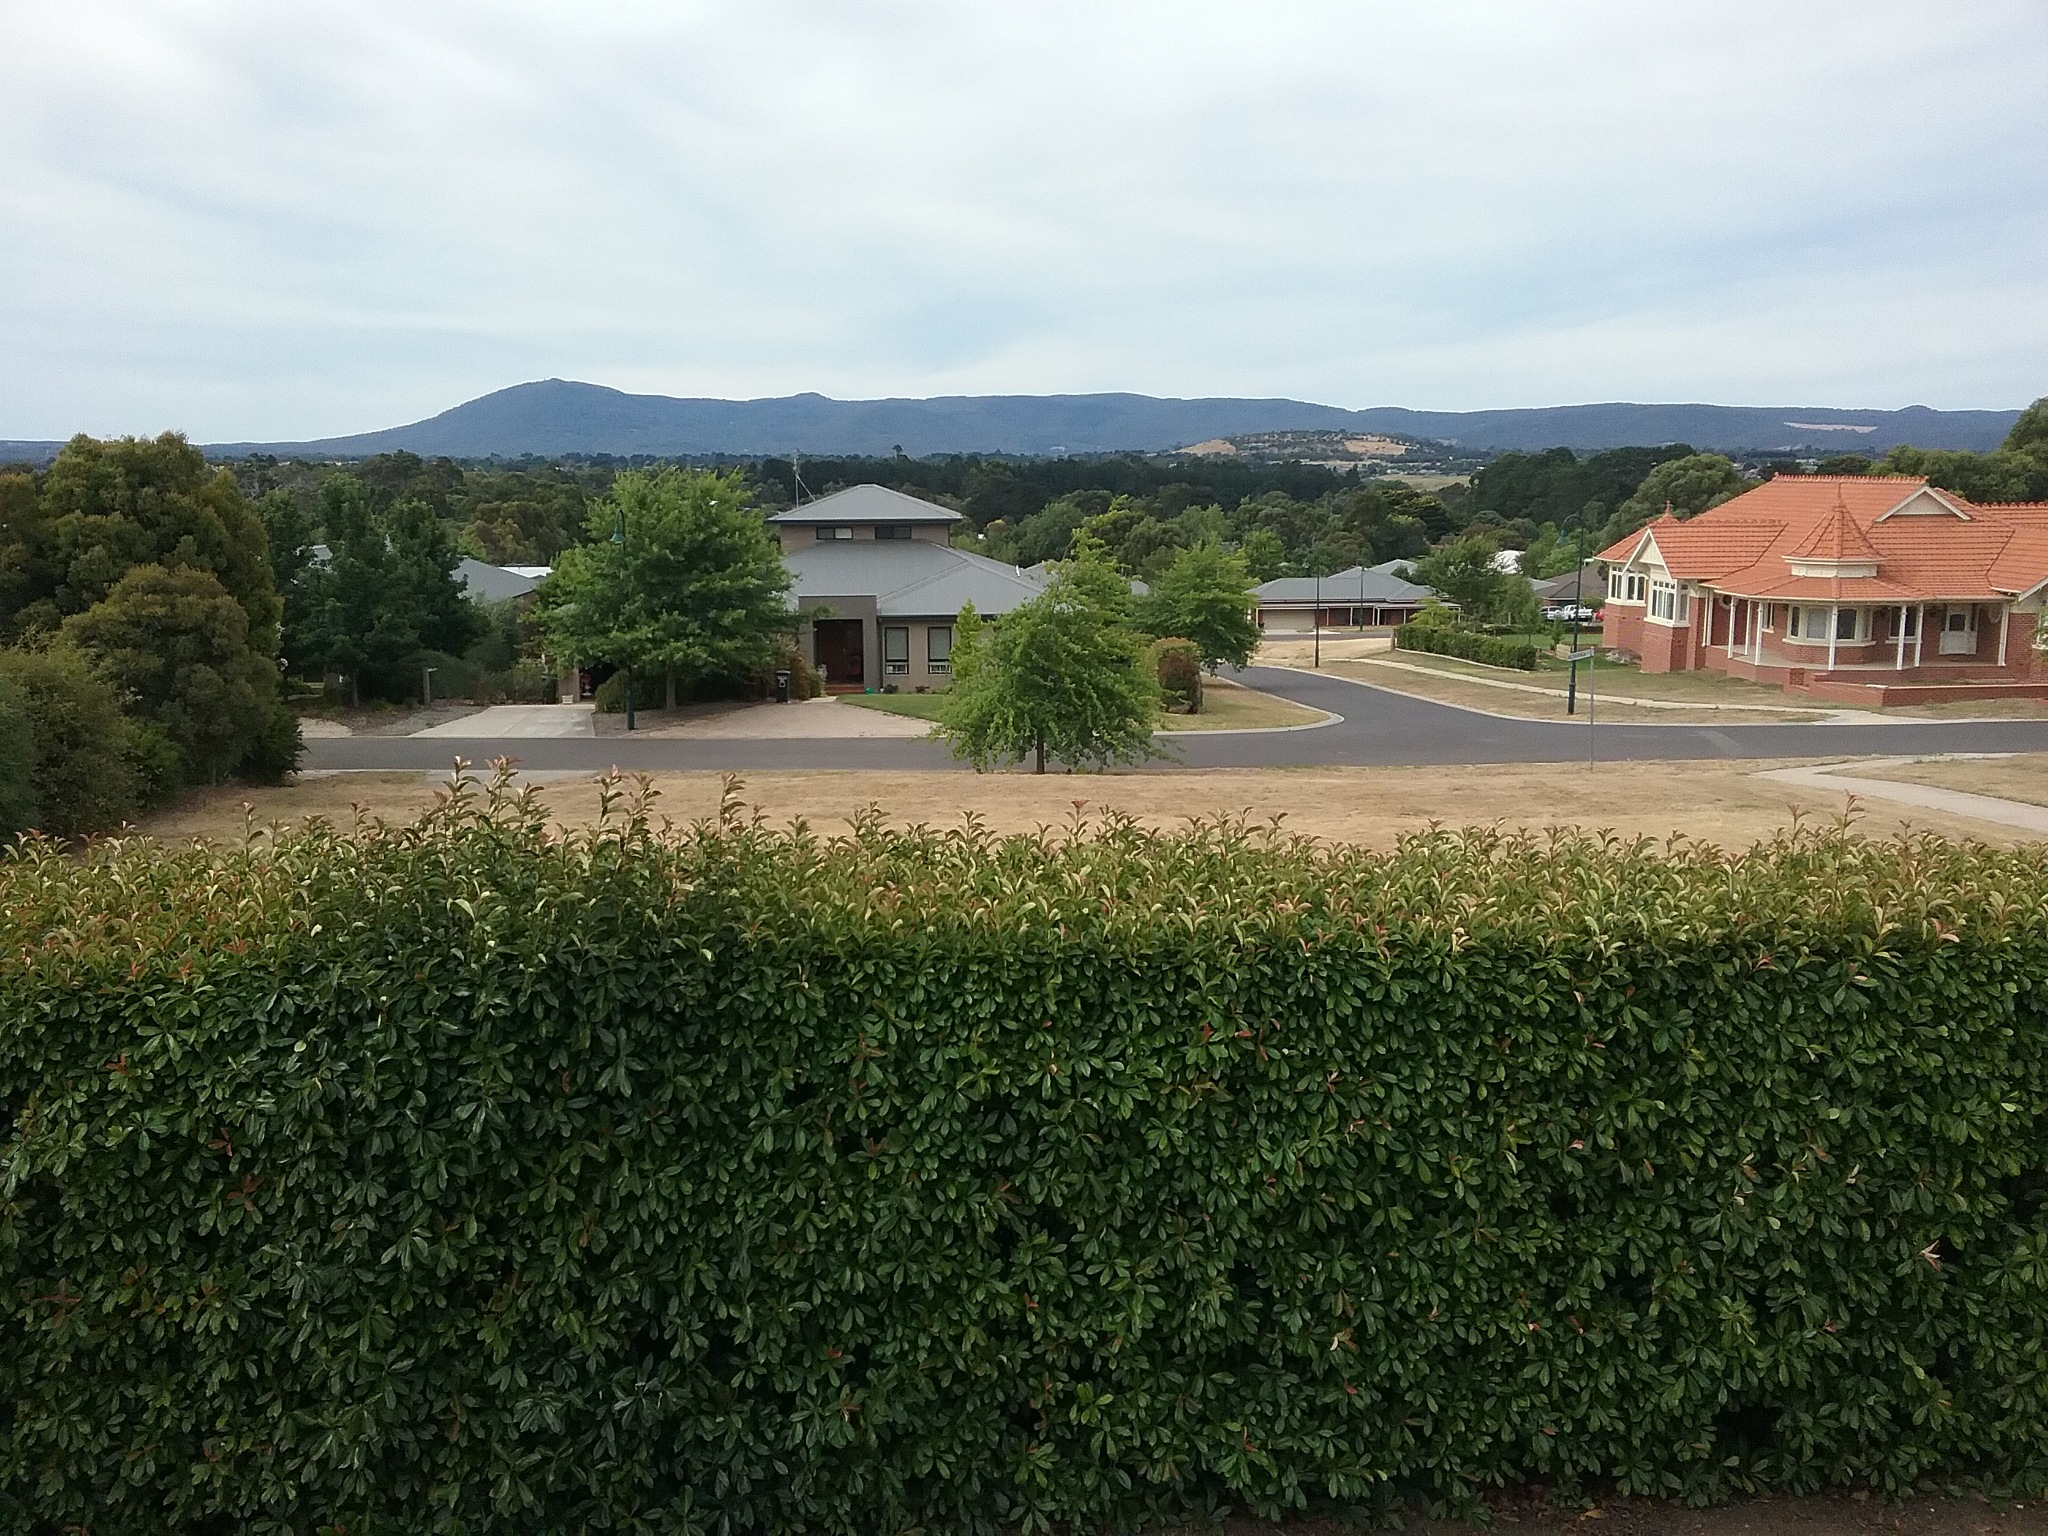 Viewing Mount Macedon by Leica Ross